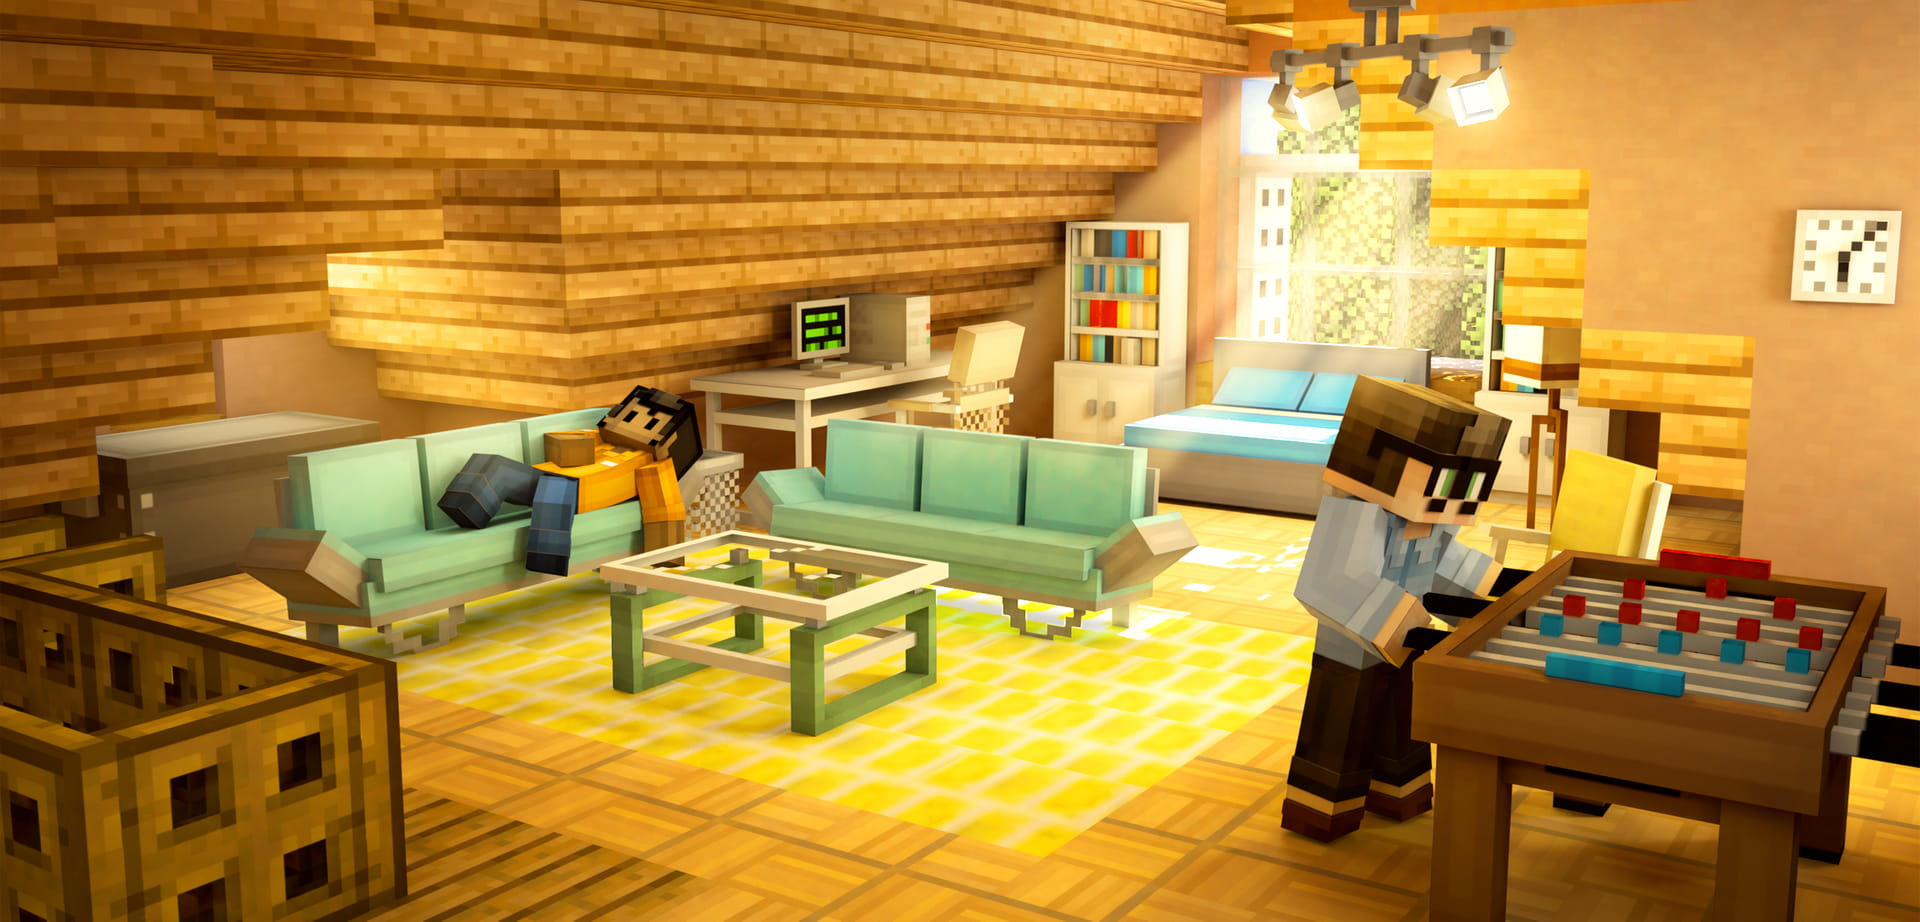 Minecraft Furniture Mod Modern Main Render